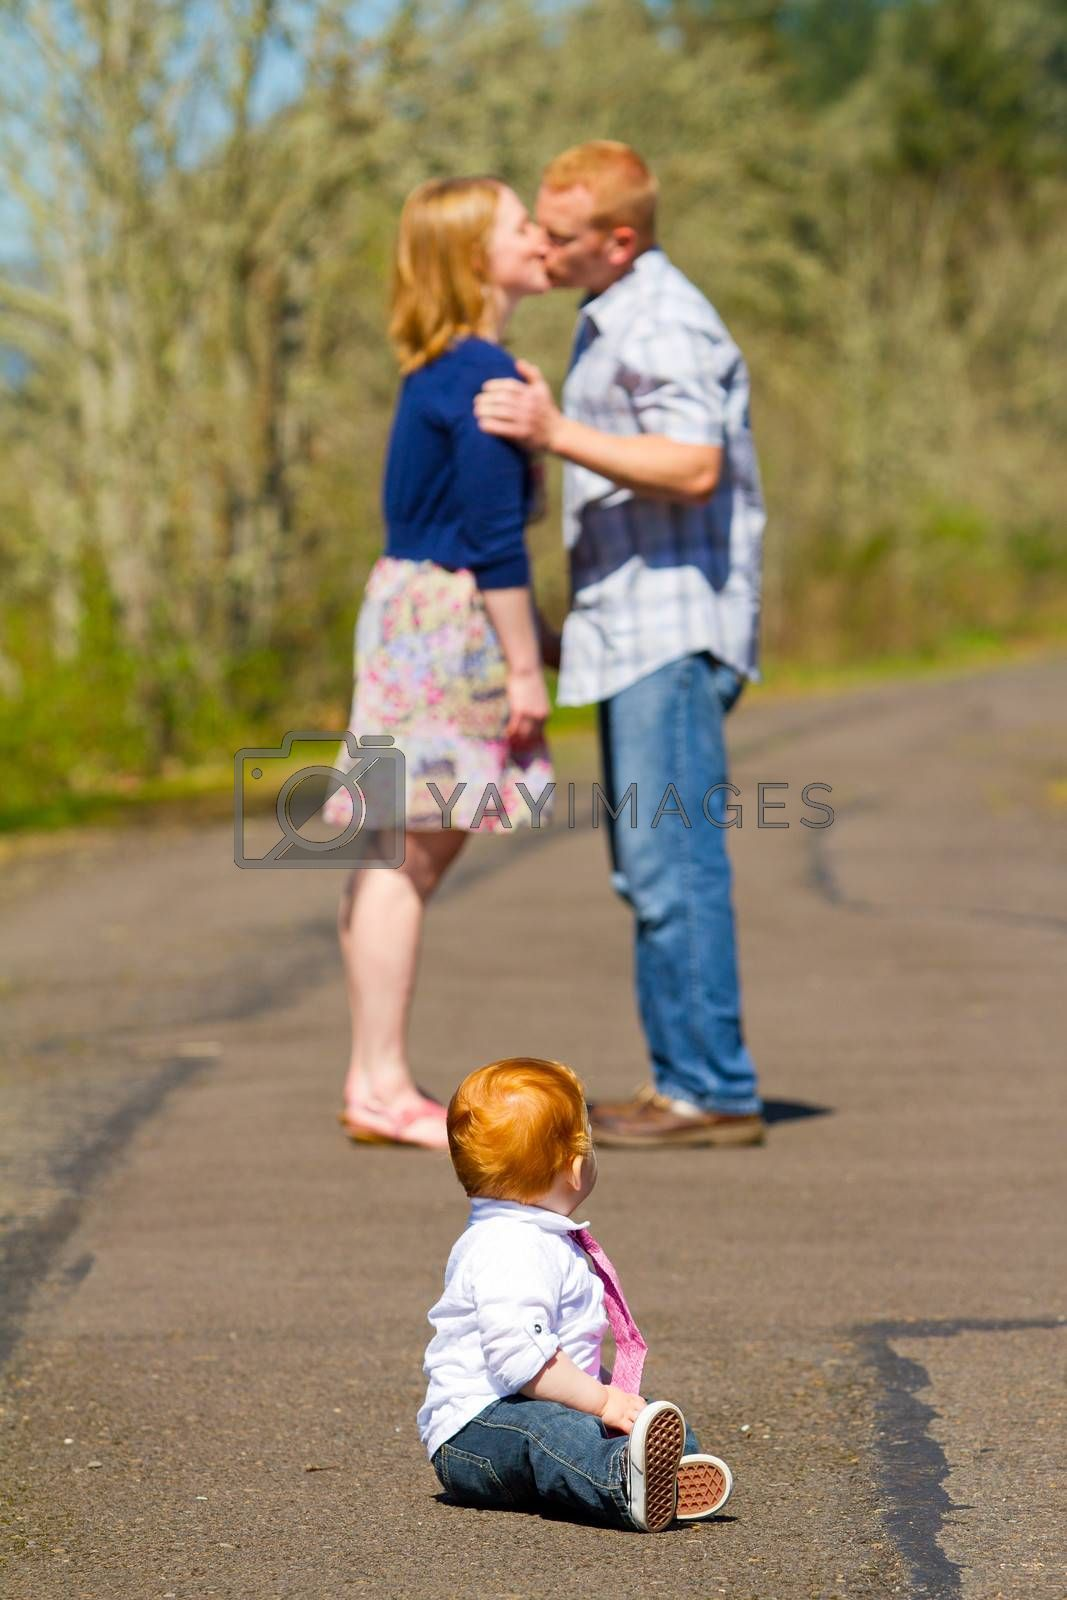 In this selective focus image the parents of a baby one year old boy are kissing out of focus in the background.